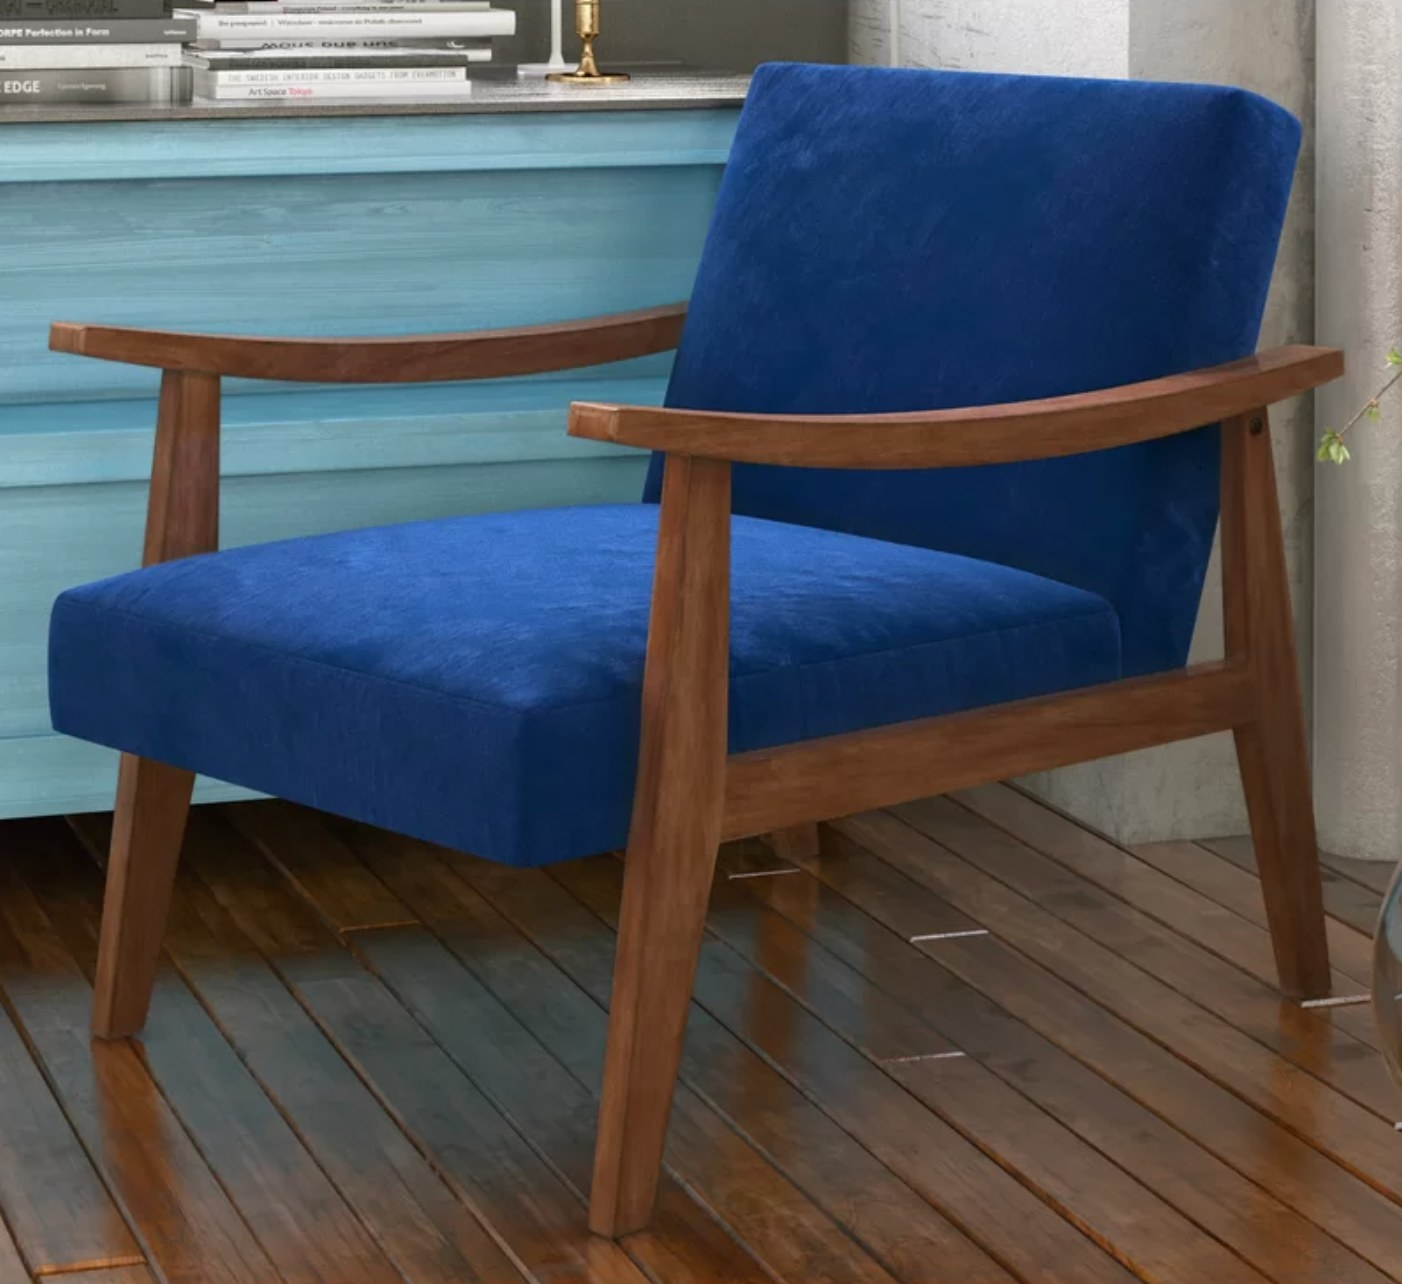 The armchair in azure with wood arms and legs